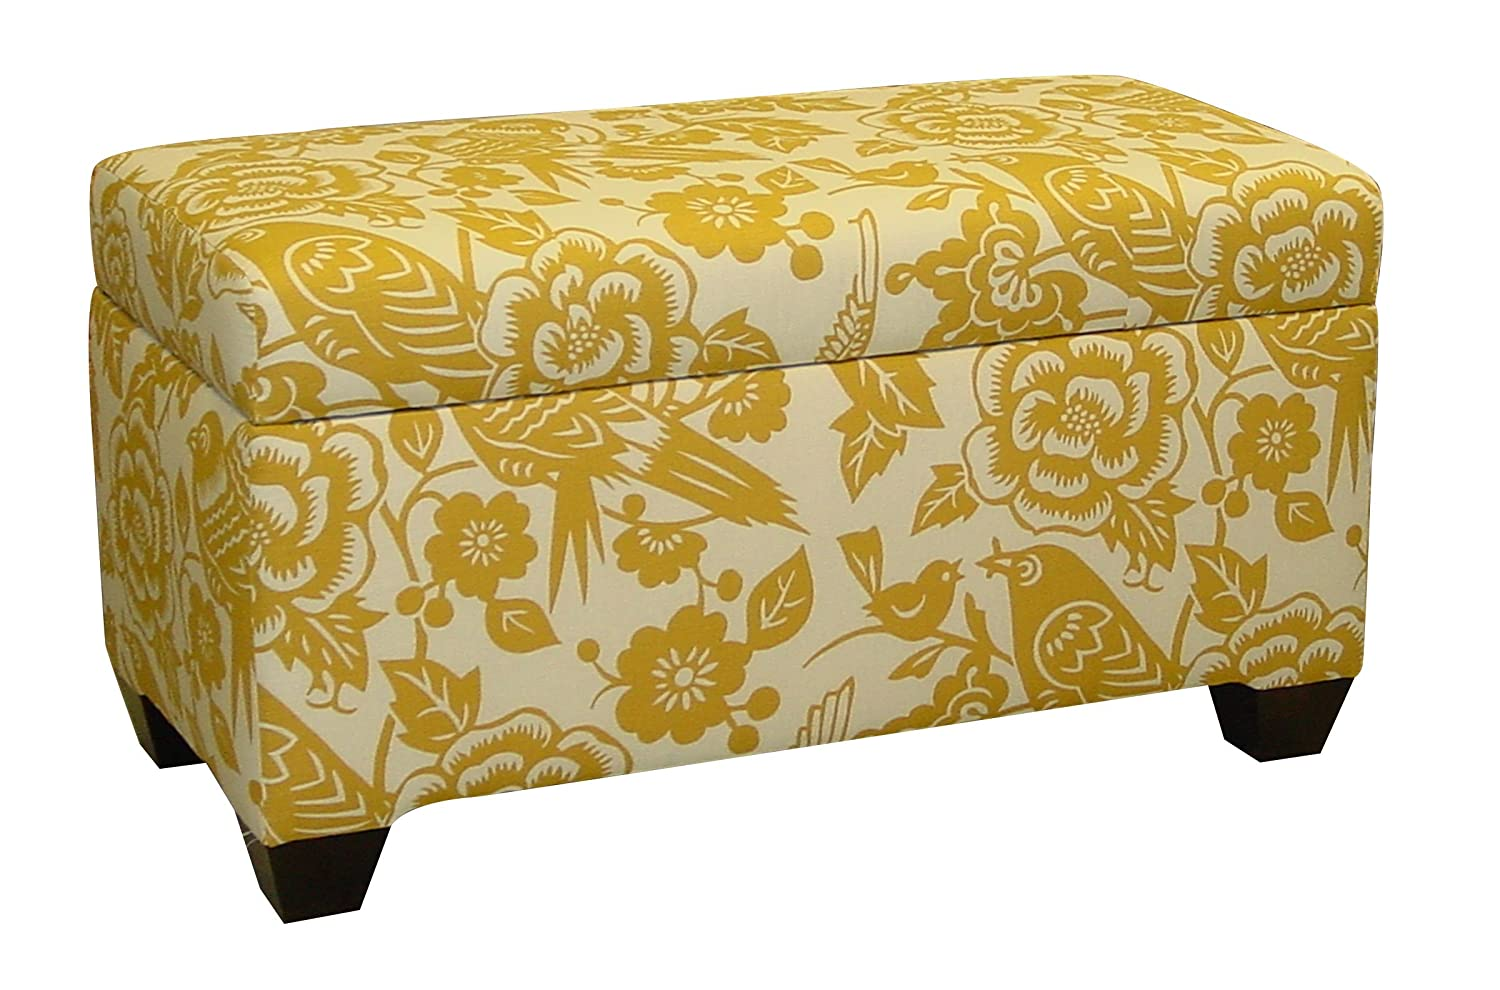 Amazon.com: Skyline Furniture Walnut Hill Storage Bench In Canary Earth  Fabric: Kitchen U0026 Dining